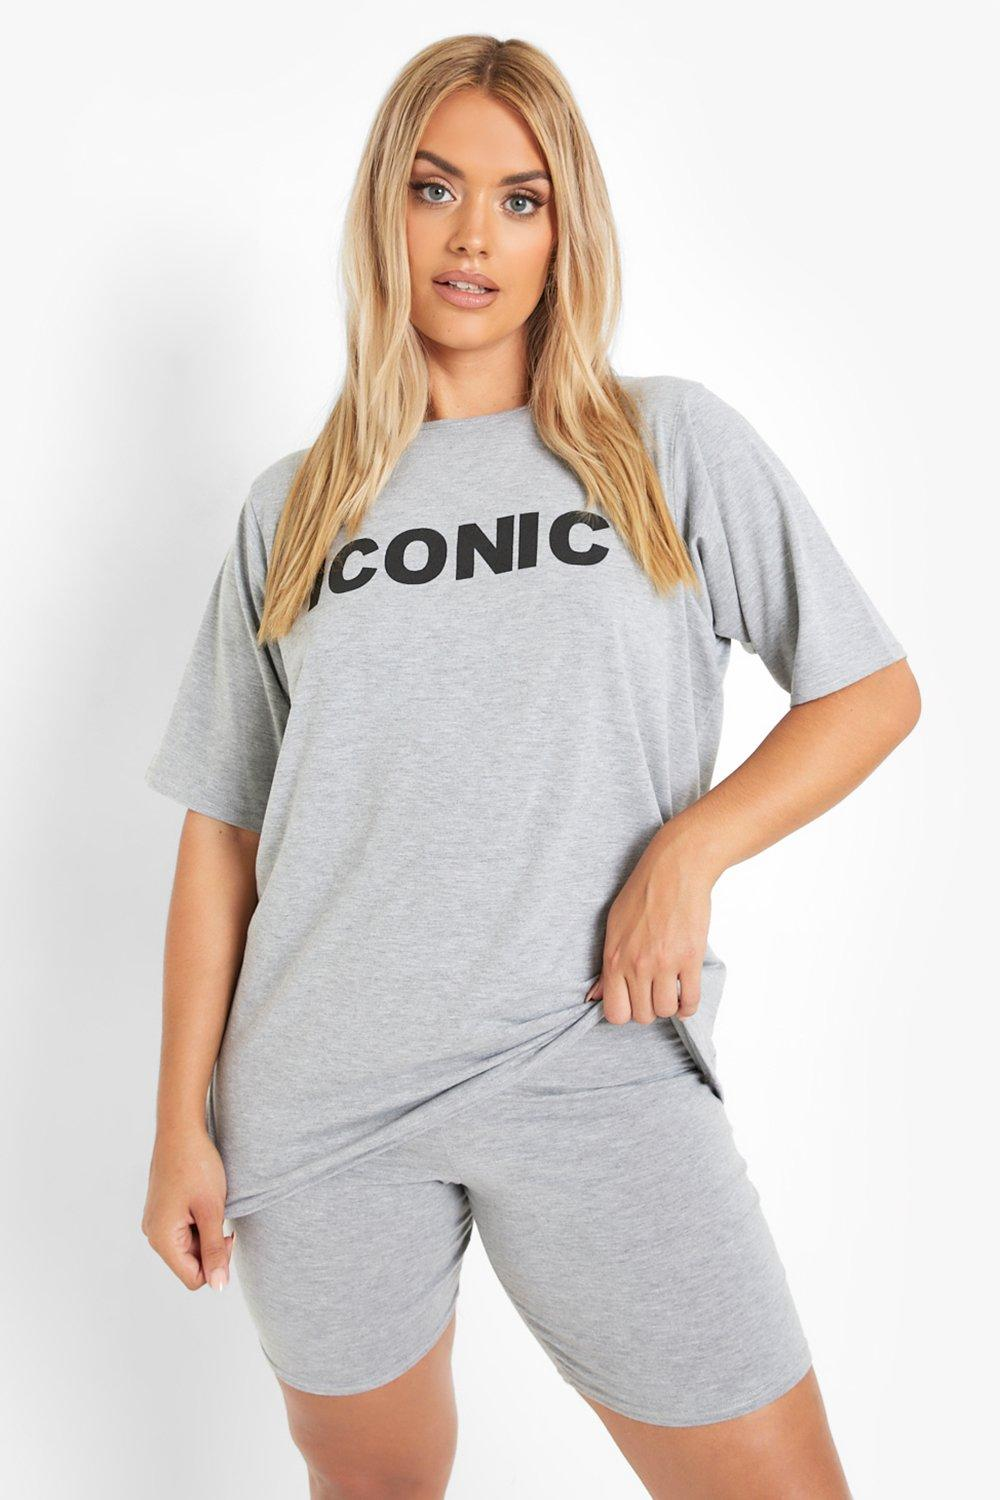 Plus Iconic Slogan T-Shirt & Short Co-ord 3